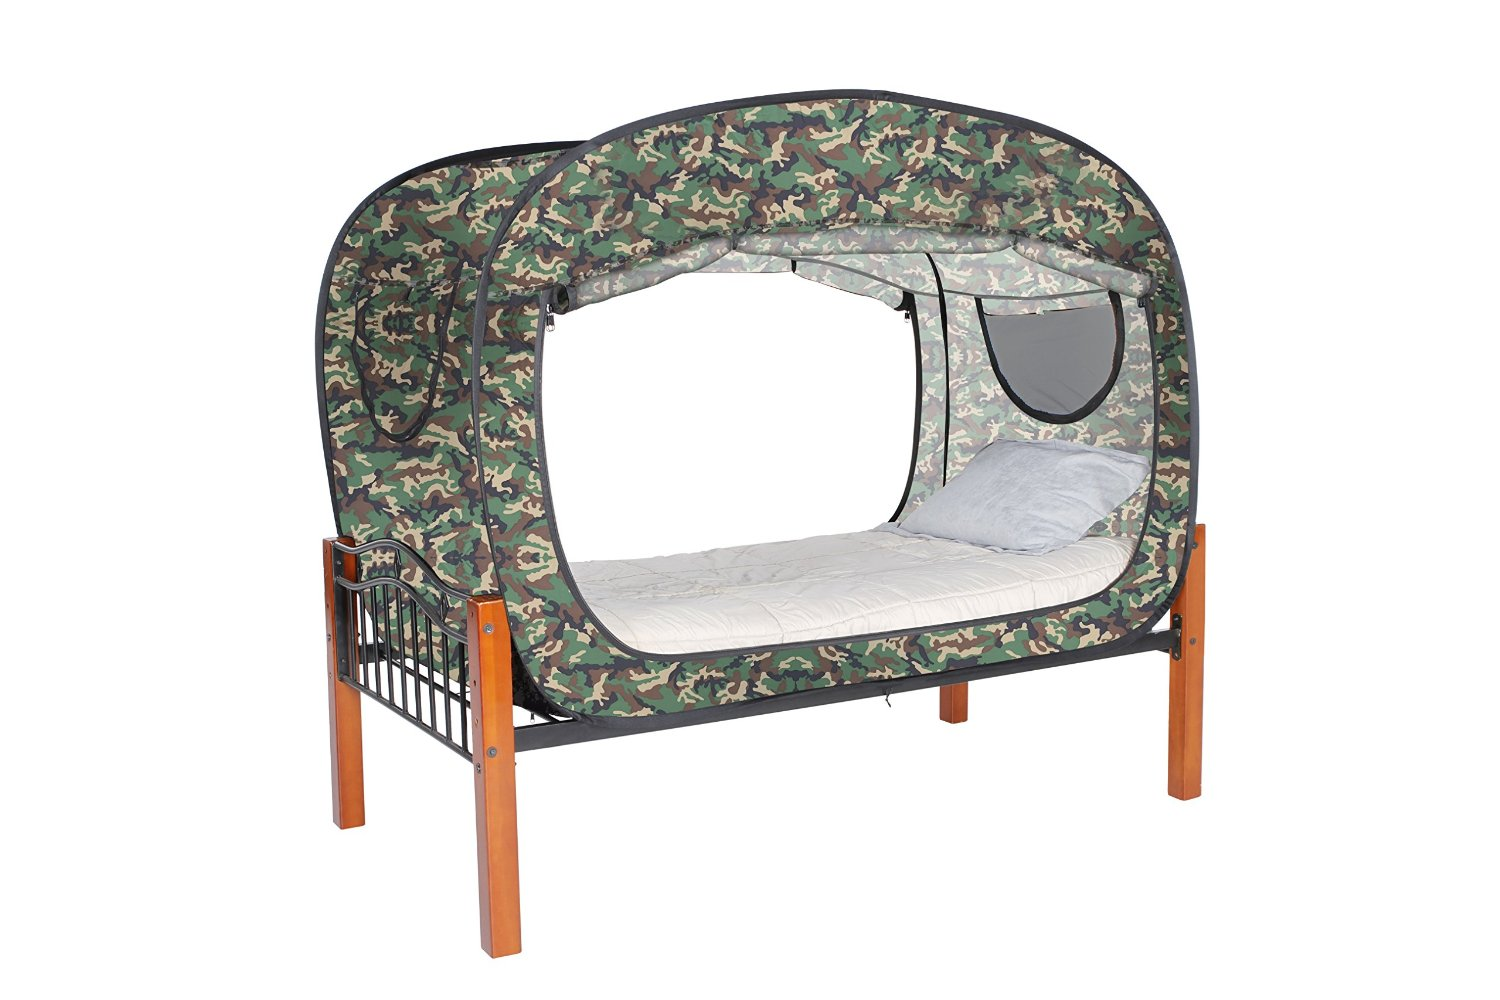 College Dorm Bed Tent Coupons: Privacy Pop Up Bed Tent Cover For